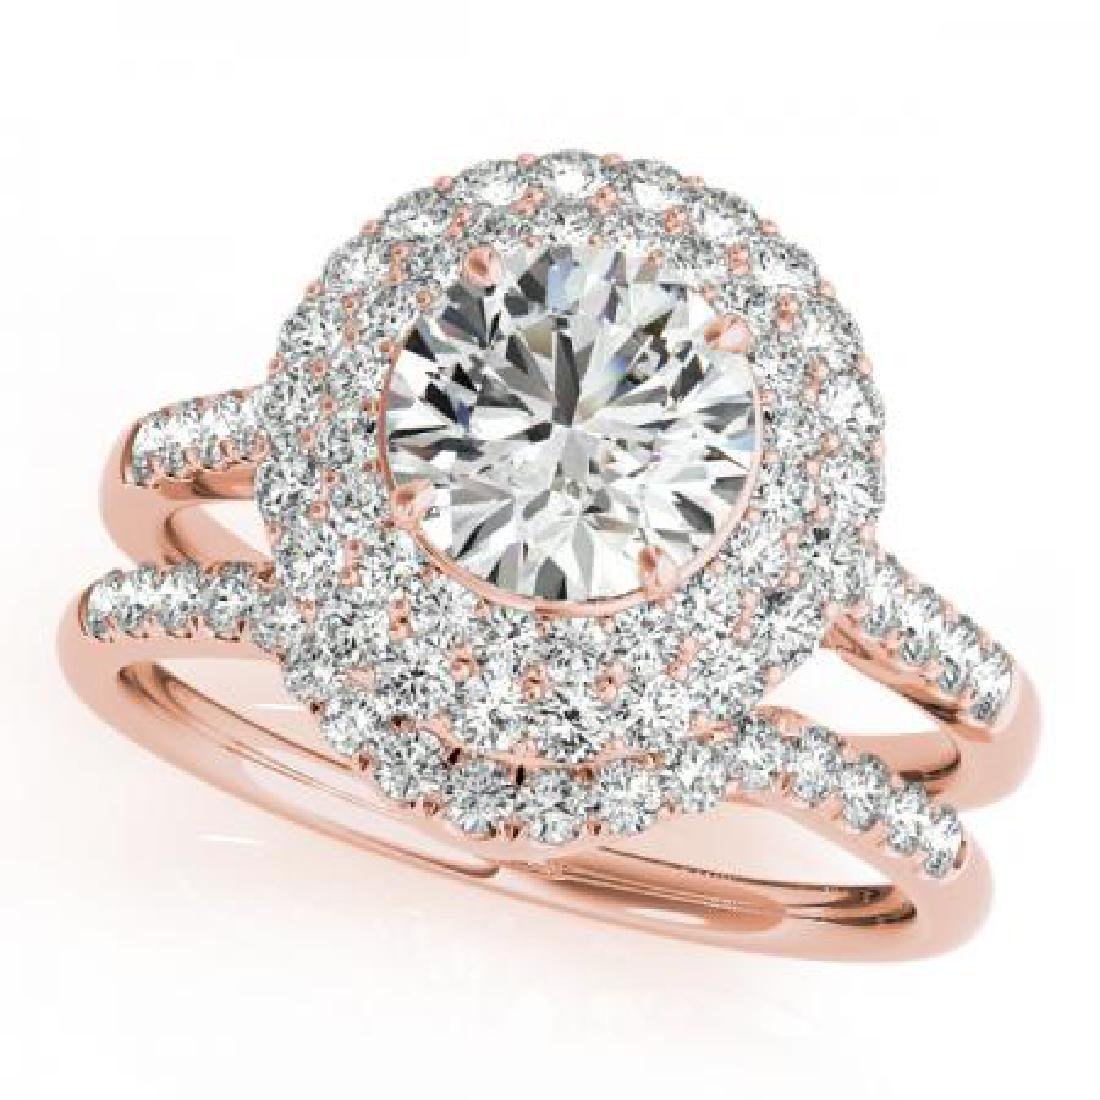 CERTIFIED 14KT ROSE GOLD 1.24 CT G-H/VS-SI1 DIAMOND HAL